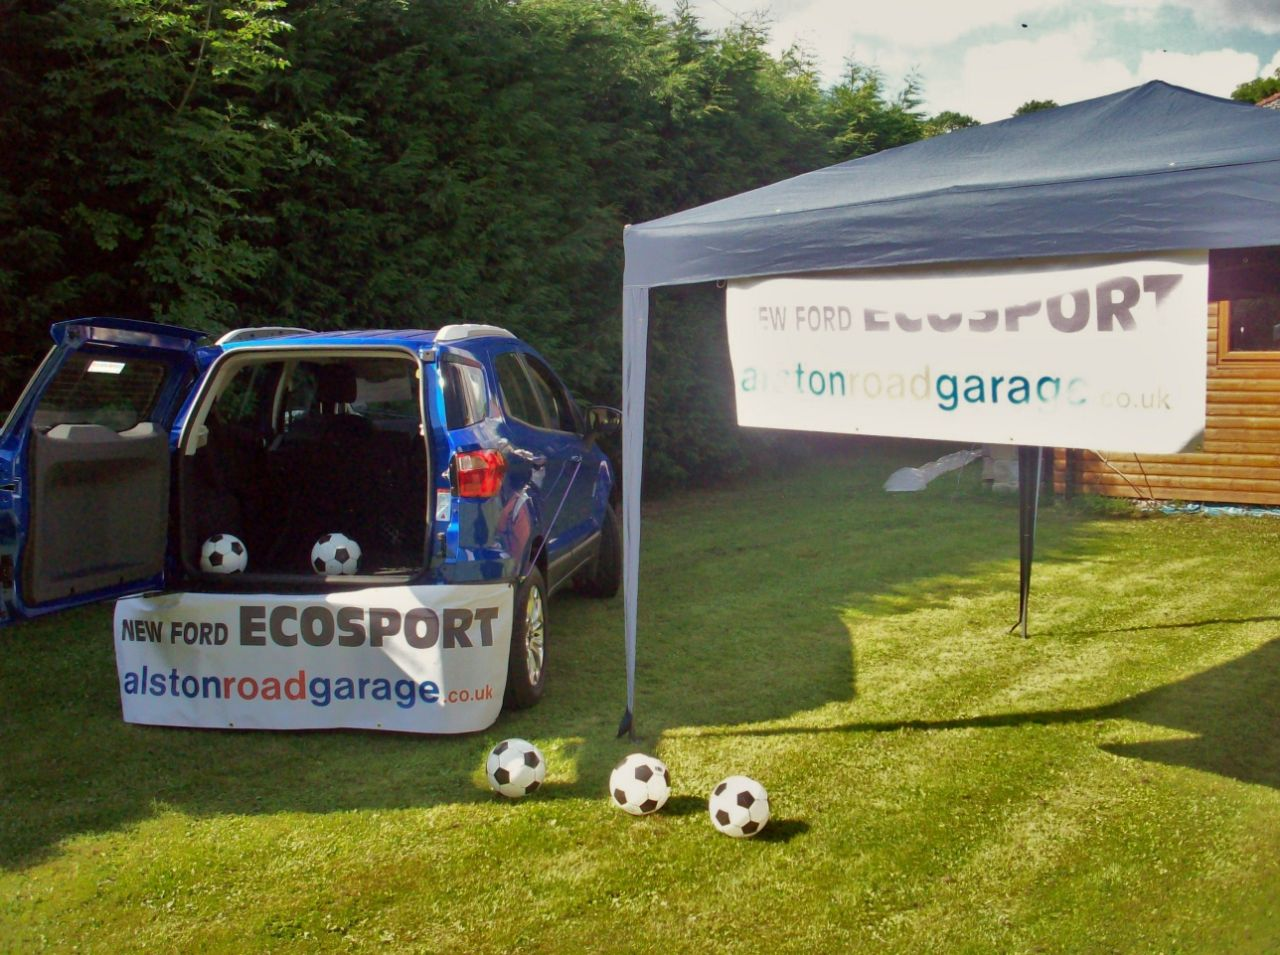 Getting ready for our Ecosport Event!